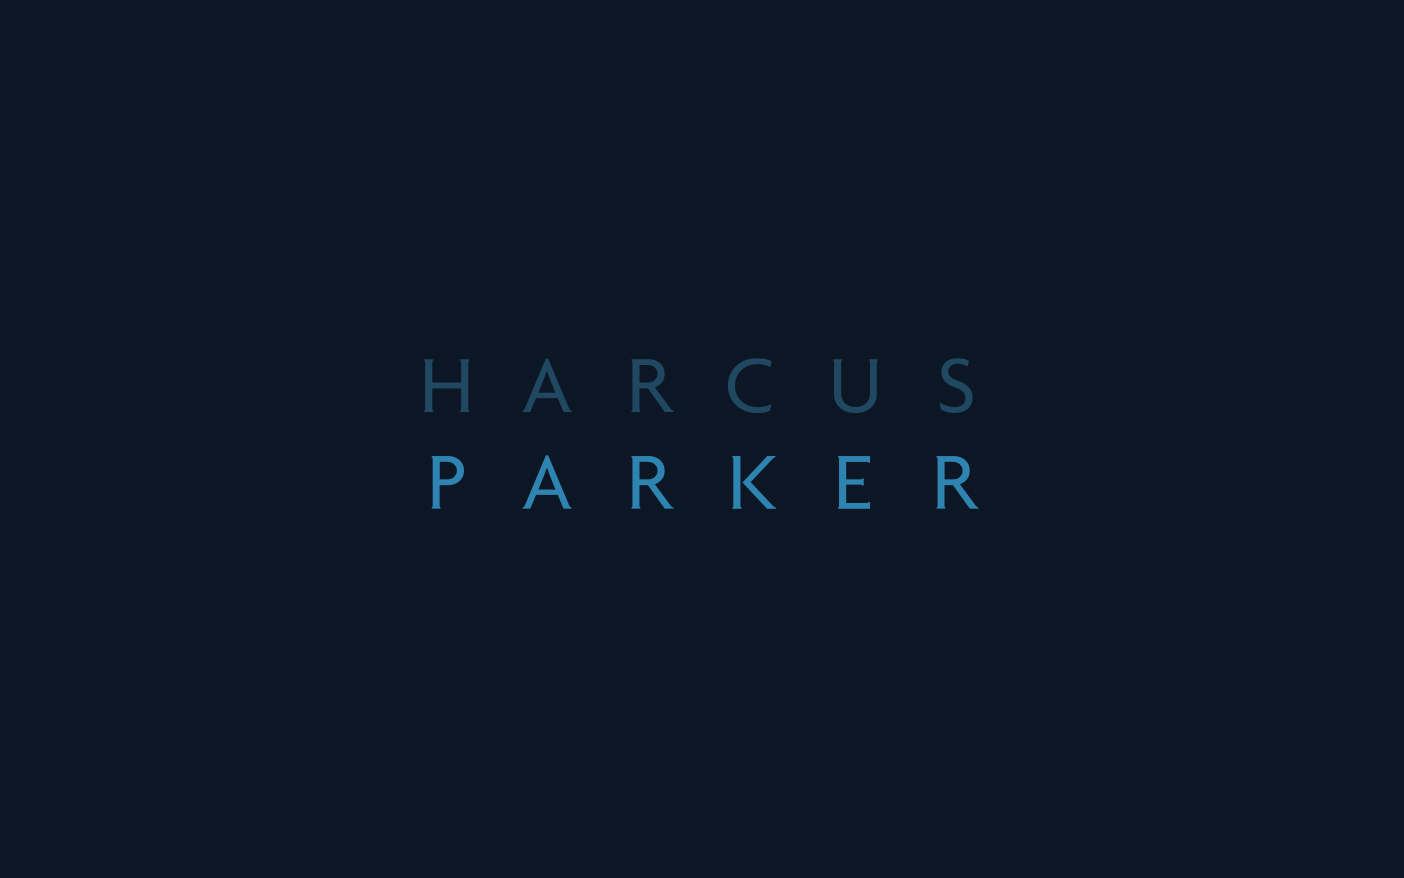 Launch of litigation firm Harcus Parker